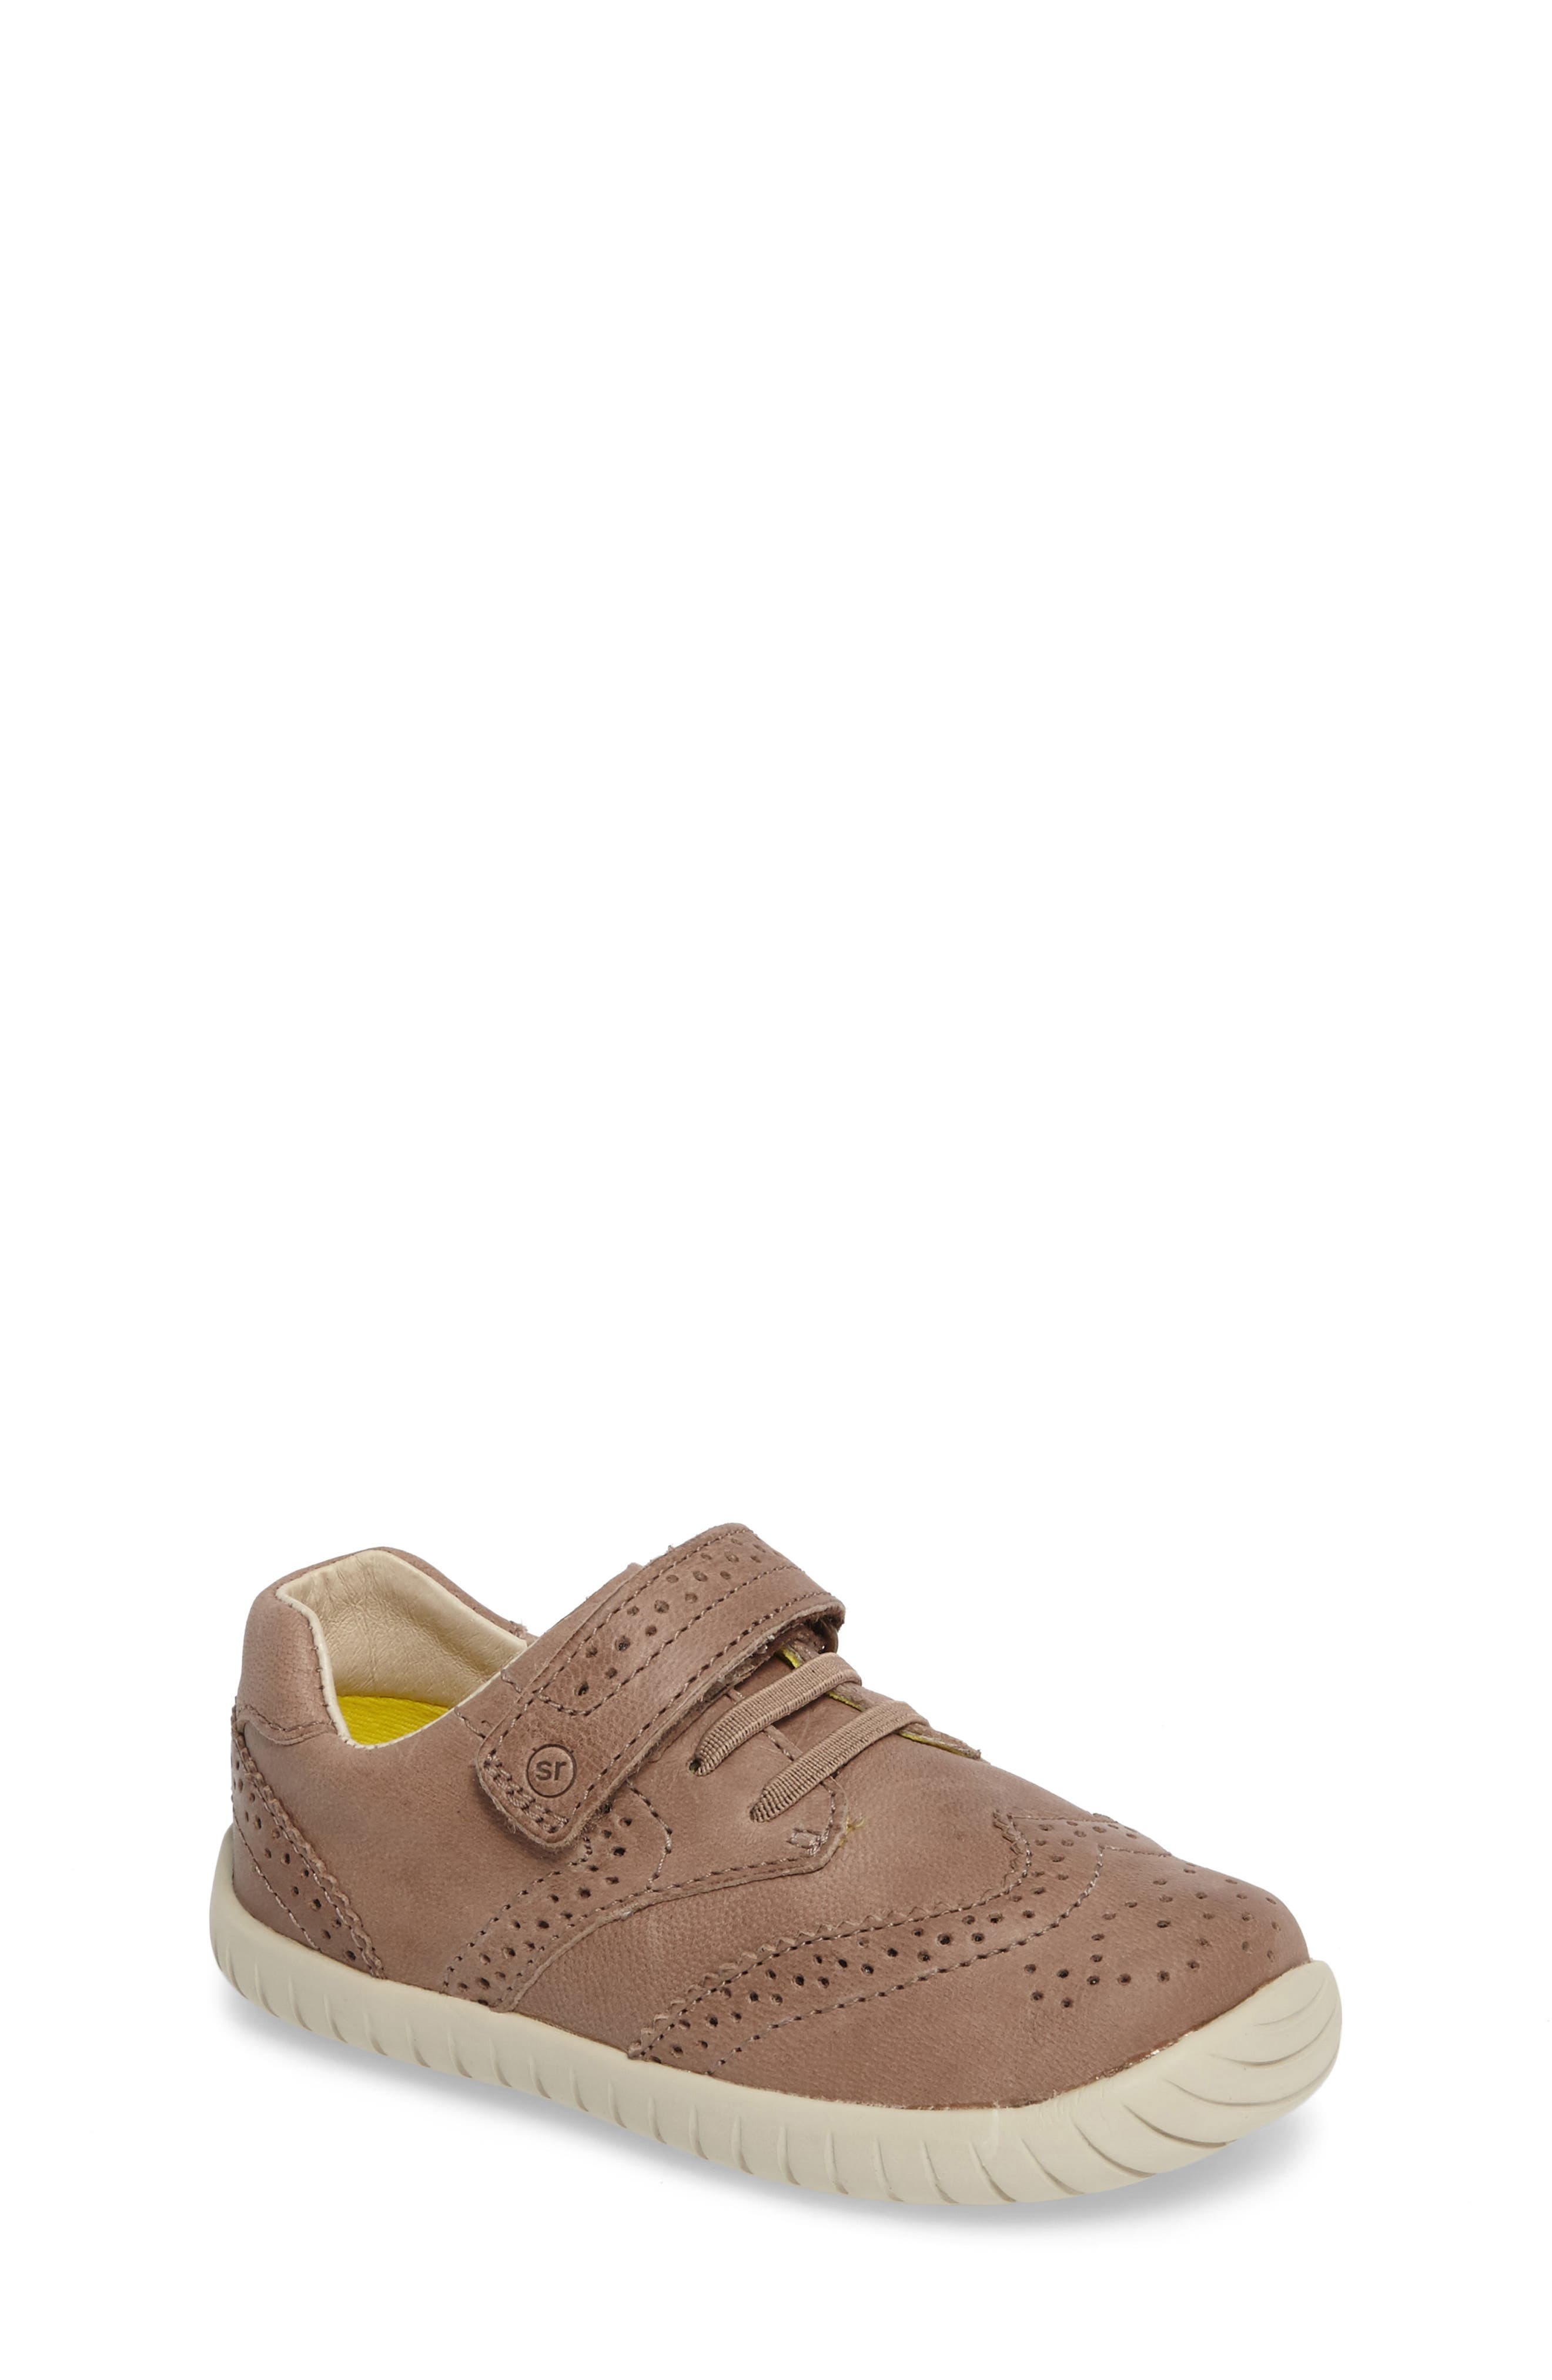 Main Image - Stride Rite Addison Wingtip Sneaker (Baby, Walker & Toddler)